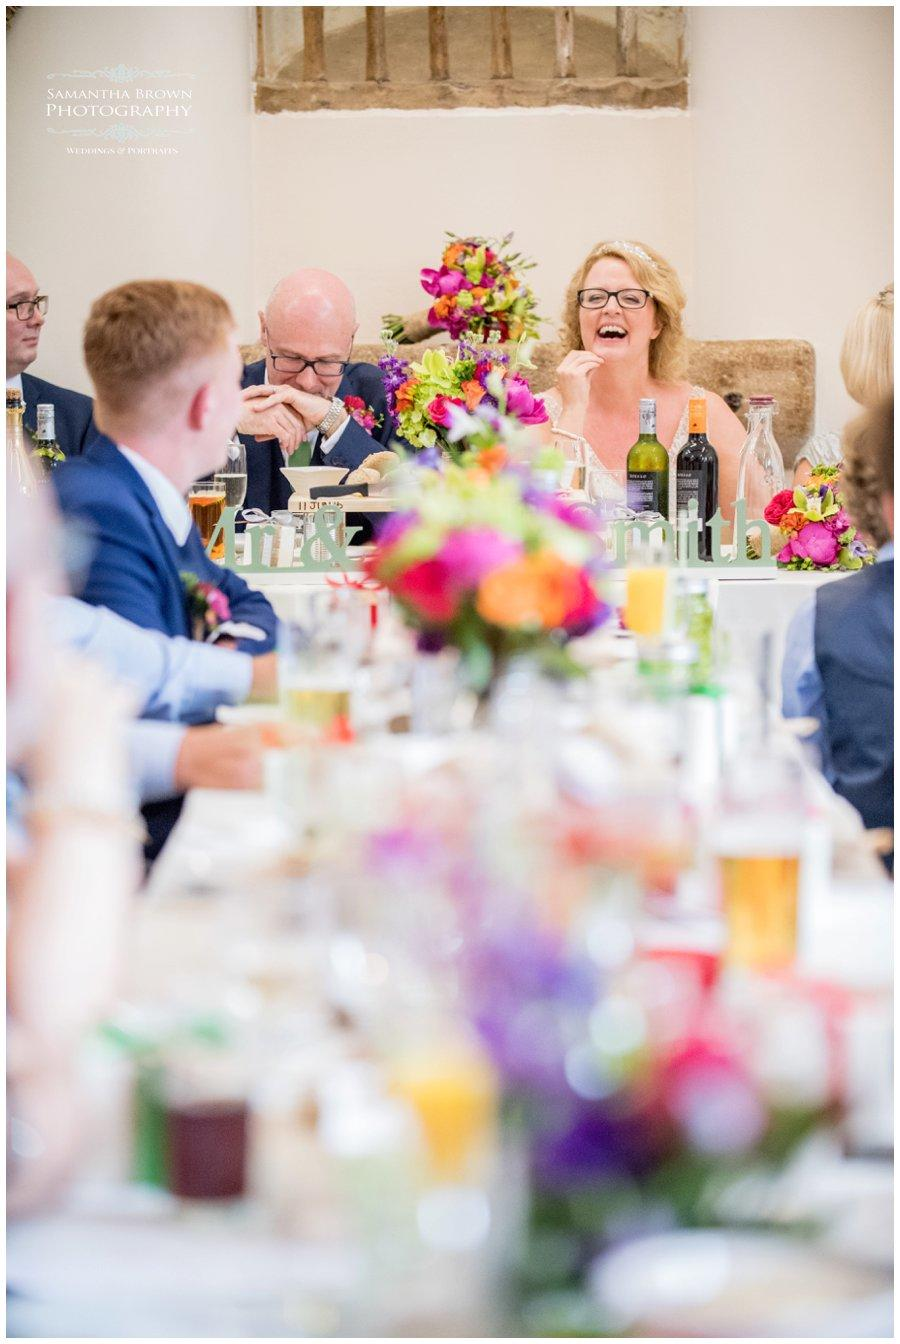 wedding-photography-liverpool-by-samantha-brown_0144